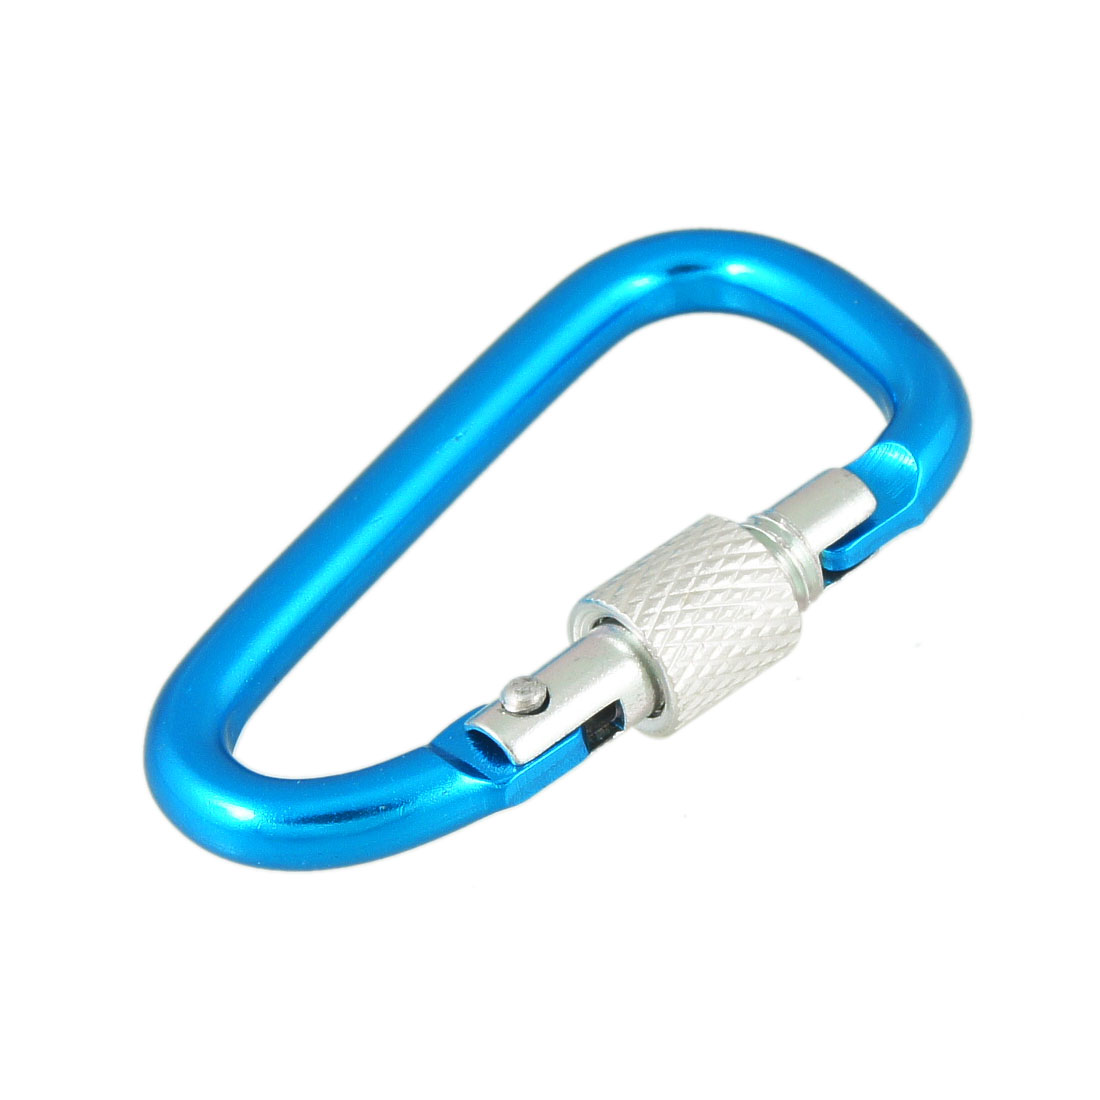 Blue D Shaped Silver Tone Aluminum Alloy Screw Nut Gate Locking Carabiner